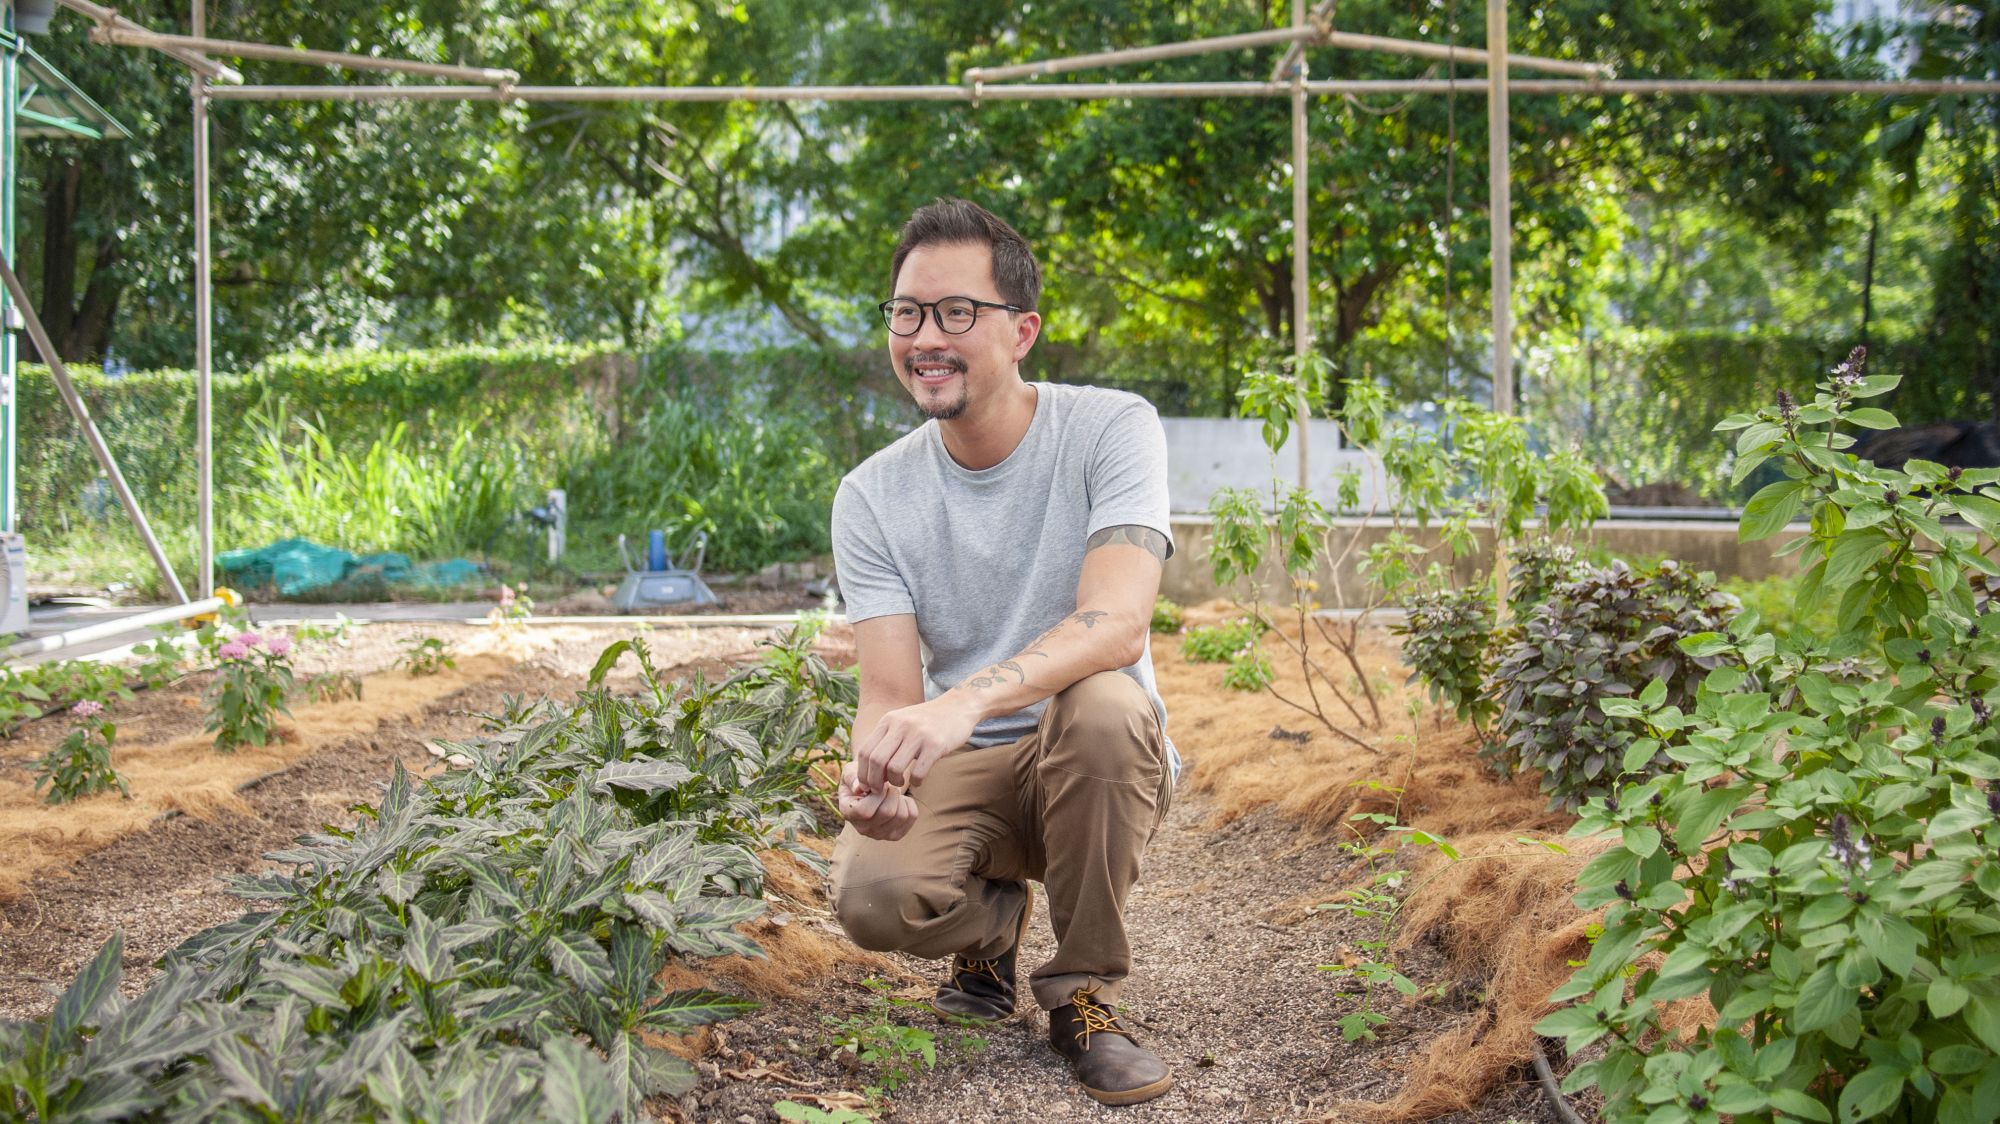 What Matters To Me: Bjorn Low, Co-Founder And Executive Director Of Edible Garden City